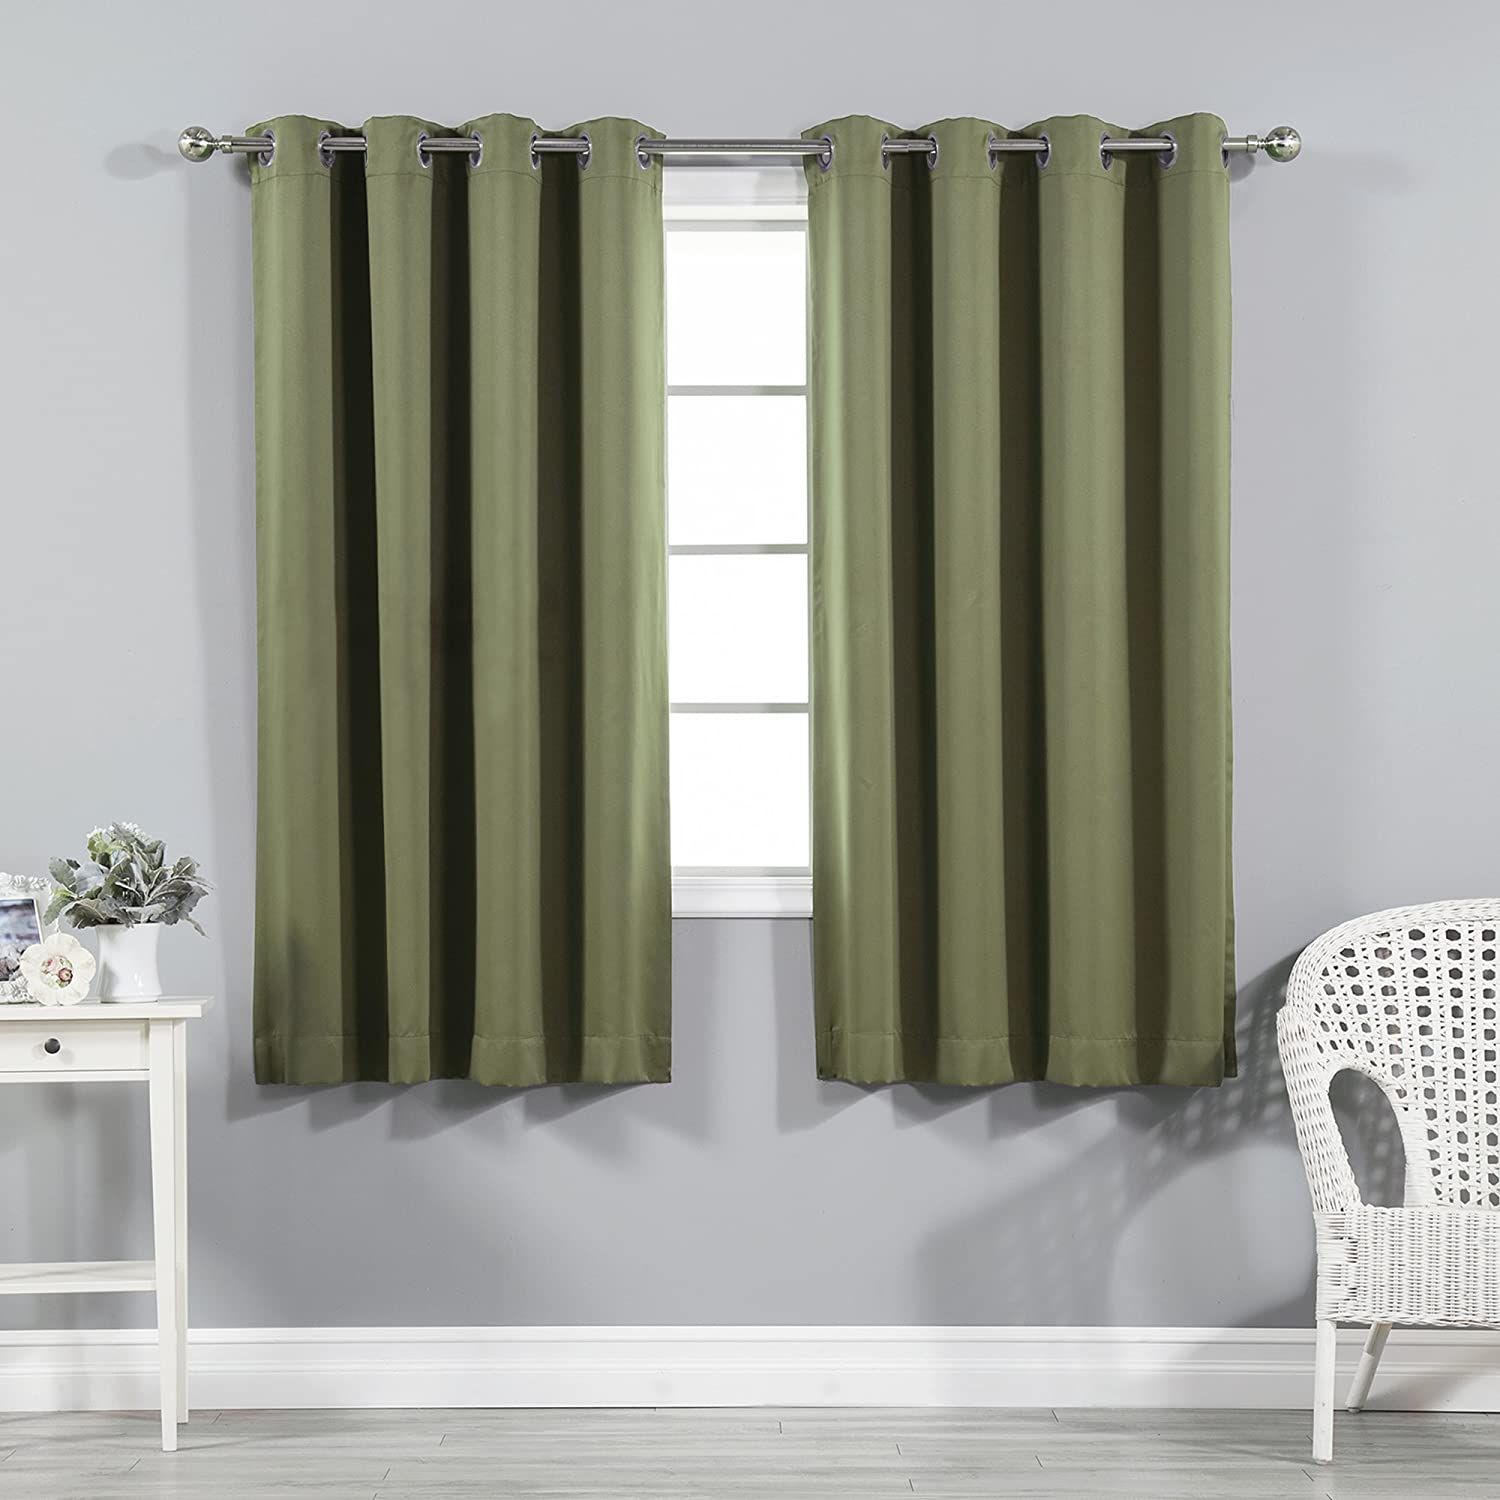 "Best Home Fashion Premium Thermal Insulated Blackout Curtains - Stainless Steel Nickel Grommet Top - Olive - 52"" W x 63"" L - (Set of 2 Panels)"